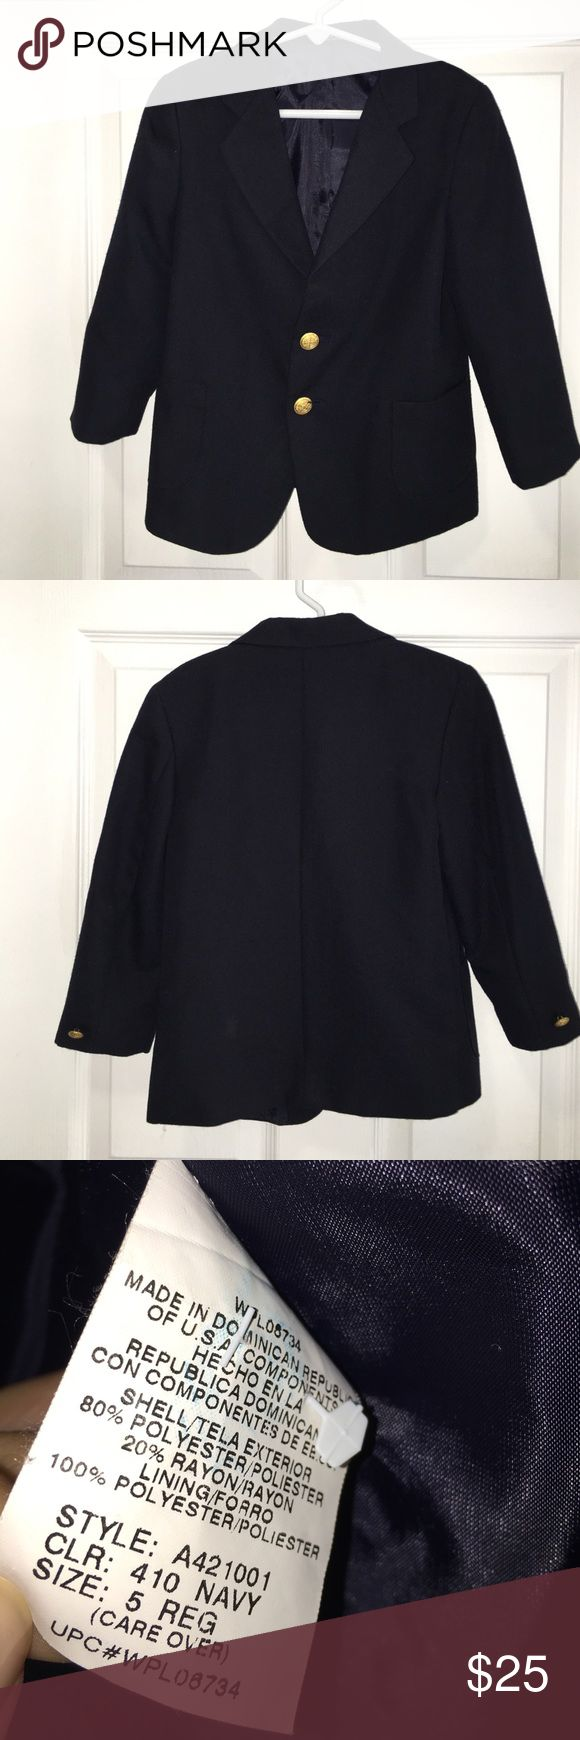 🐰Dark navy blue blazer for boys Have your little boy look like a little gentleman in this classic two button blazer.  Perfect for Easter or any dressy occasion.  I ship same day!  Gold tone buttons.  80 percent polyester/20 percent rayon.  Excellent condition.  No stains.  No rips.  Treated with care. Arrow Jackets & Coats Blazers